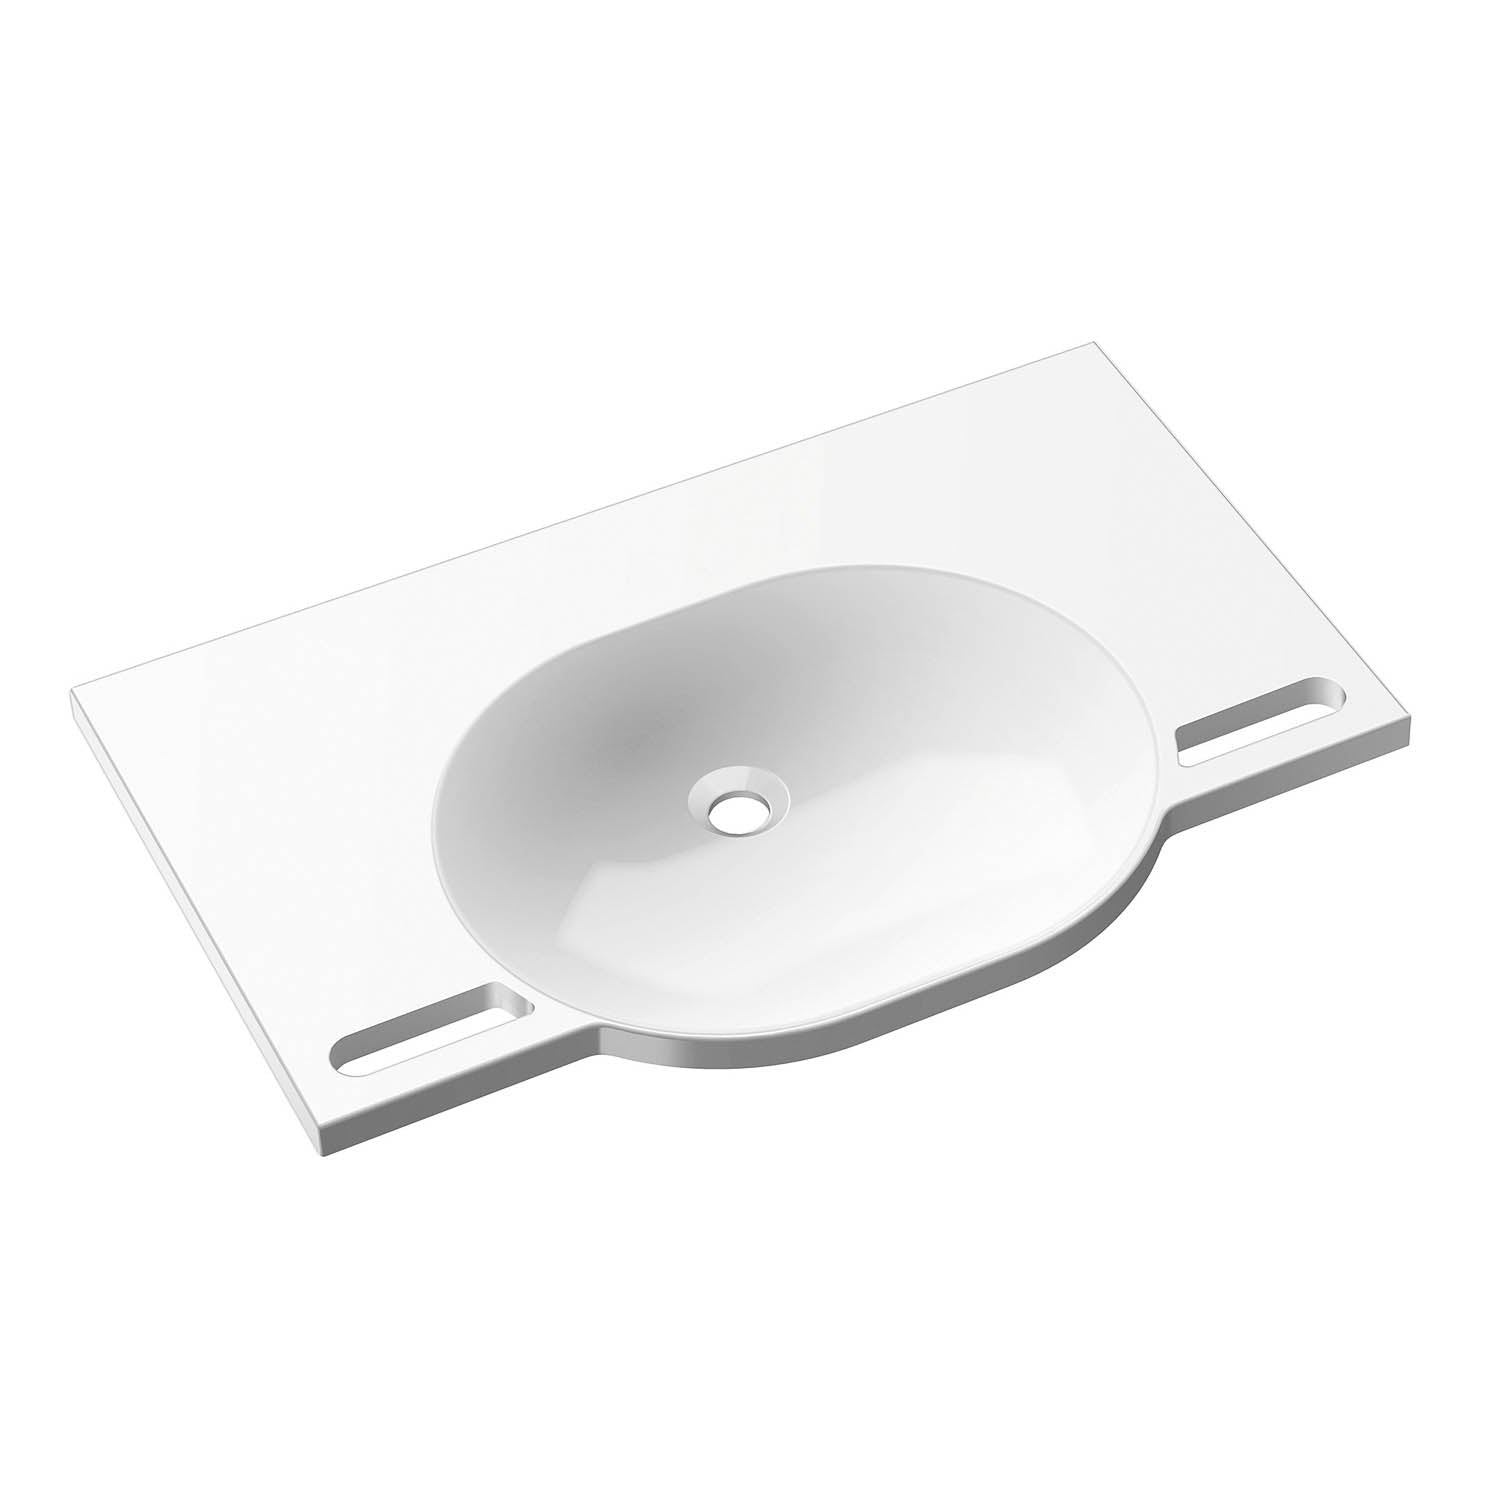 850mm SurfaceHold Wall Hung Large Oval Basin with no tap hole on a white background